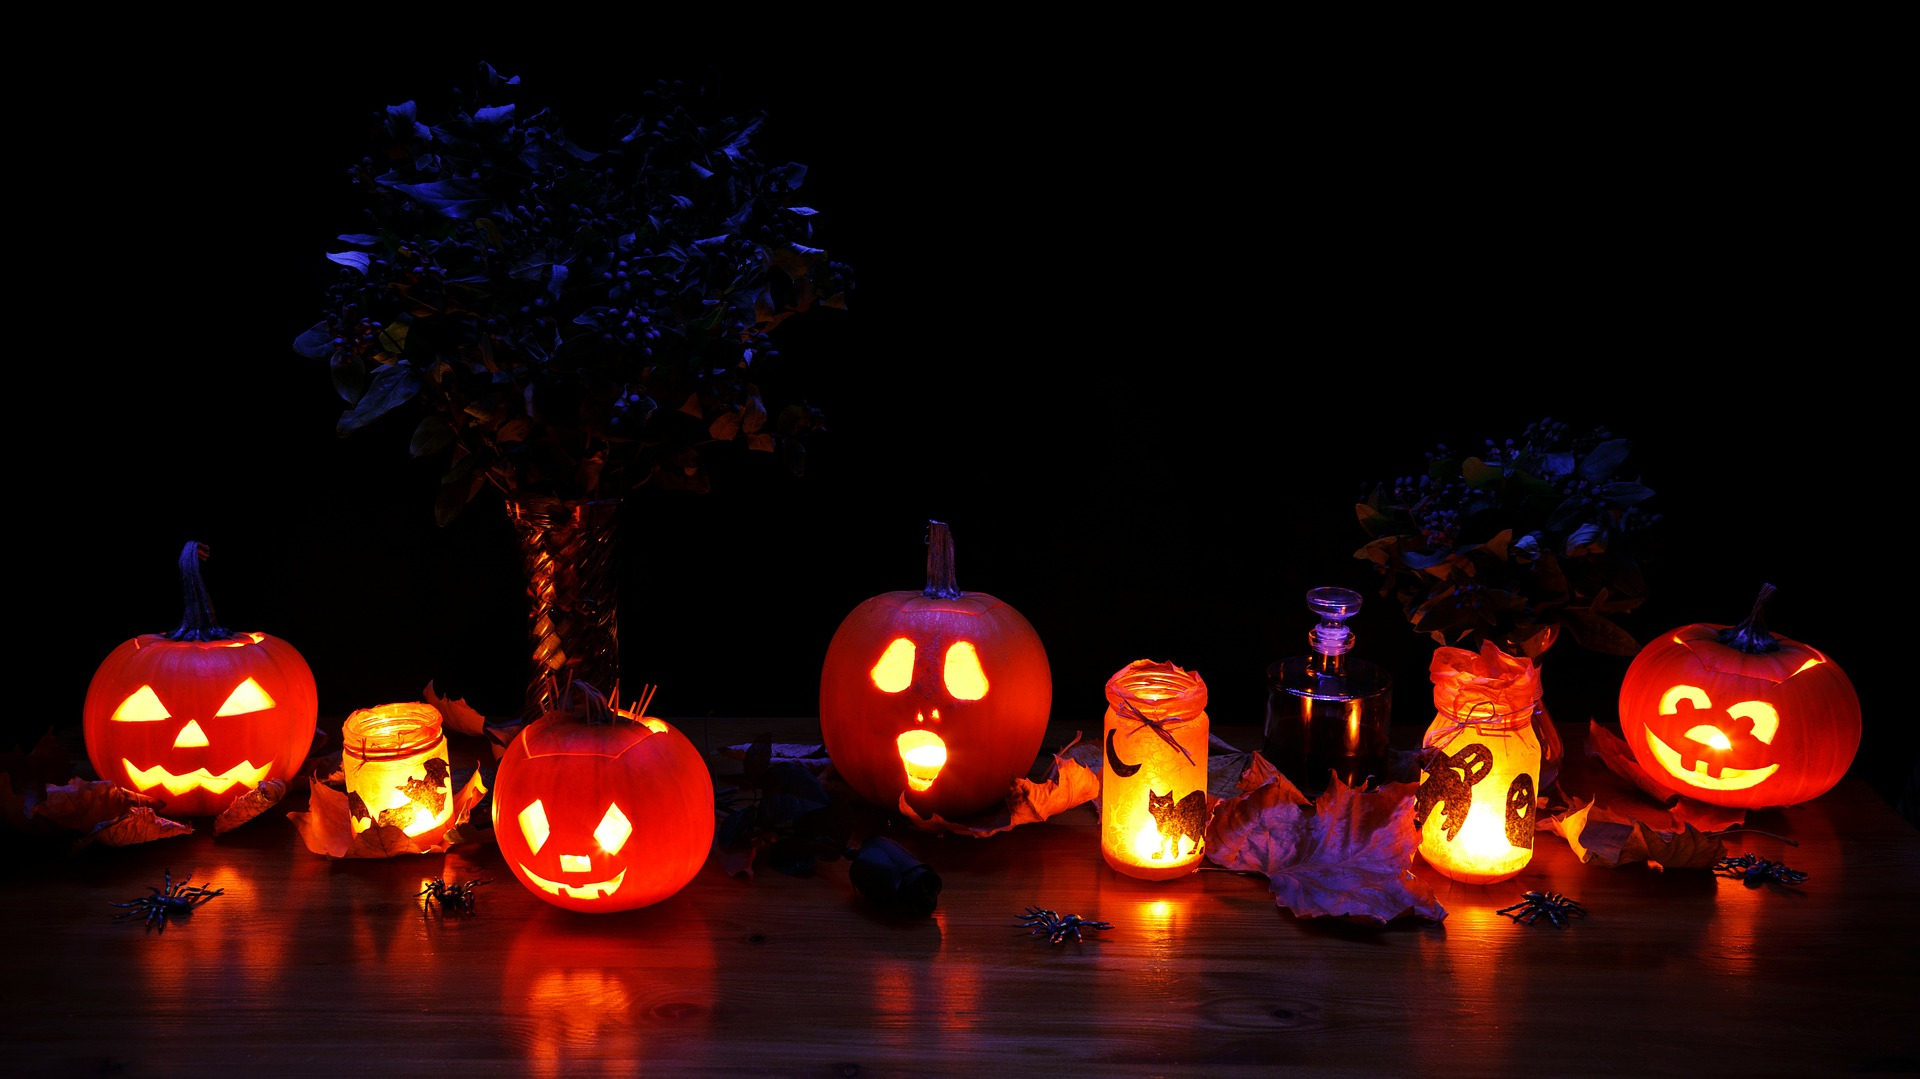 Pumpkin Patch & Halloween Activities Around Nanaimo